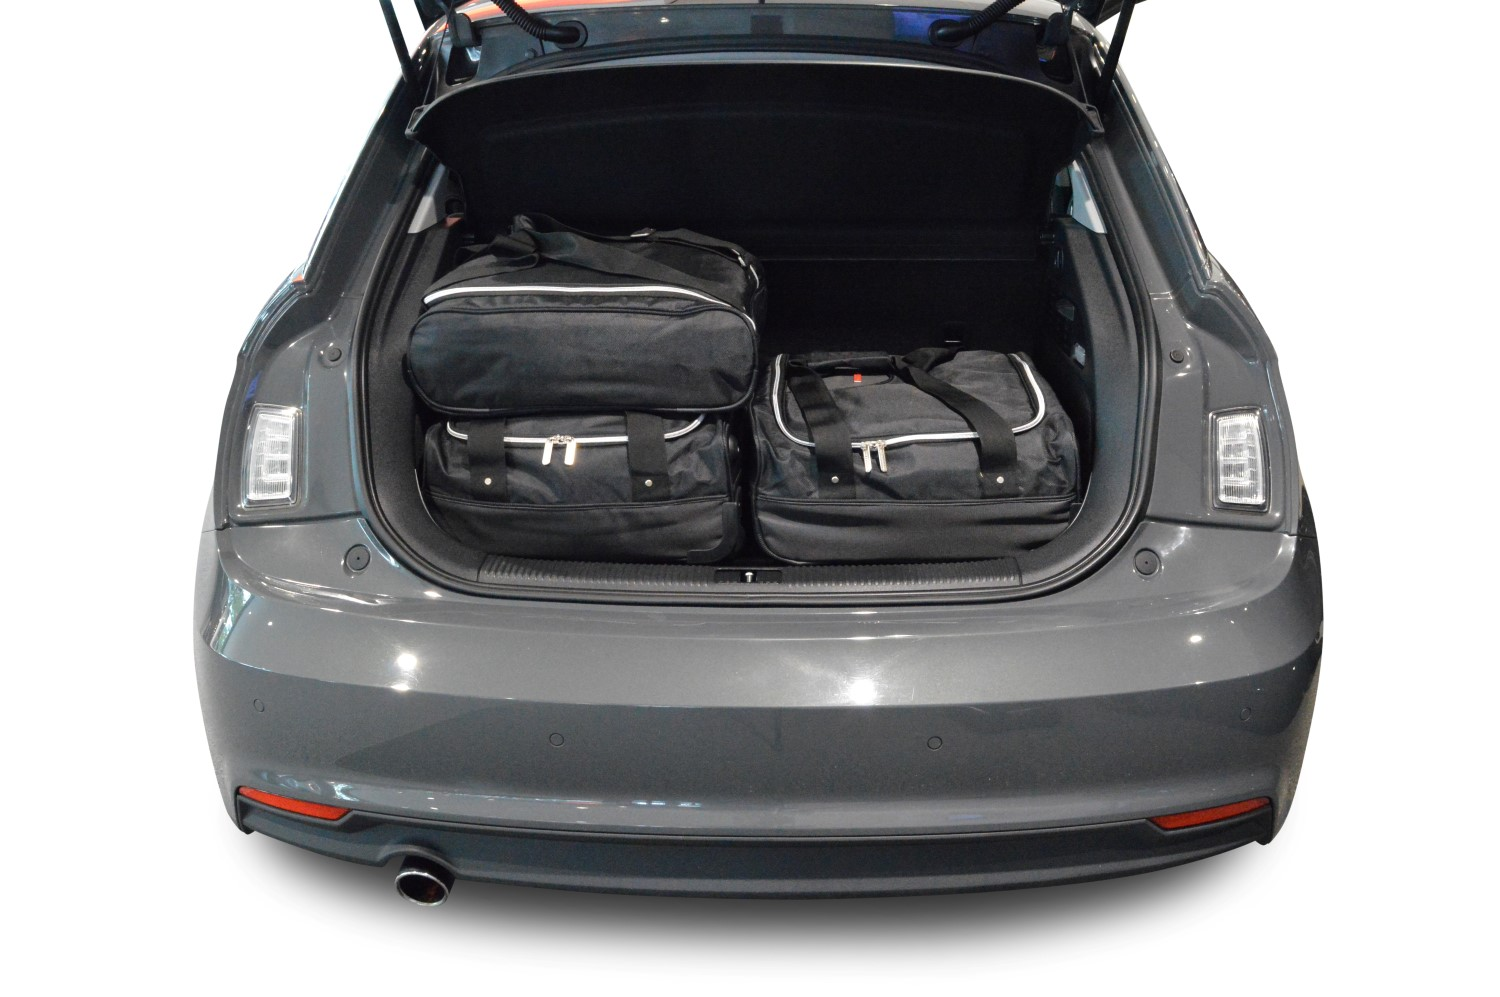 a1 audi a1 sportback 8x 2012 pr sent car bags set de sacs de voyage. Black Bedroom Furniture Sets. Home Design Ideas